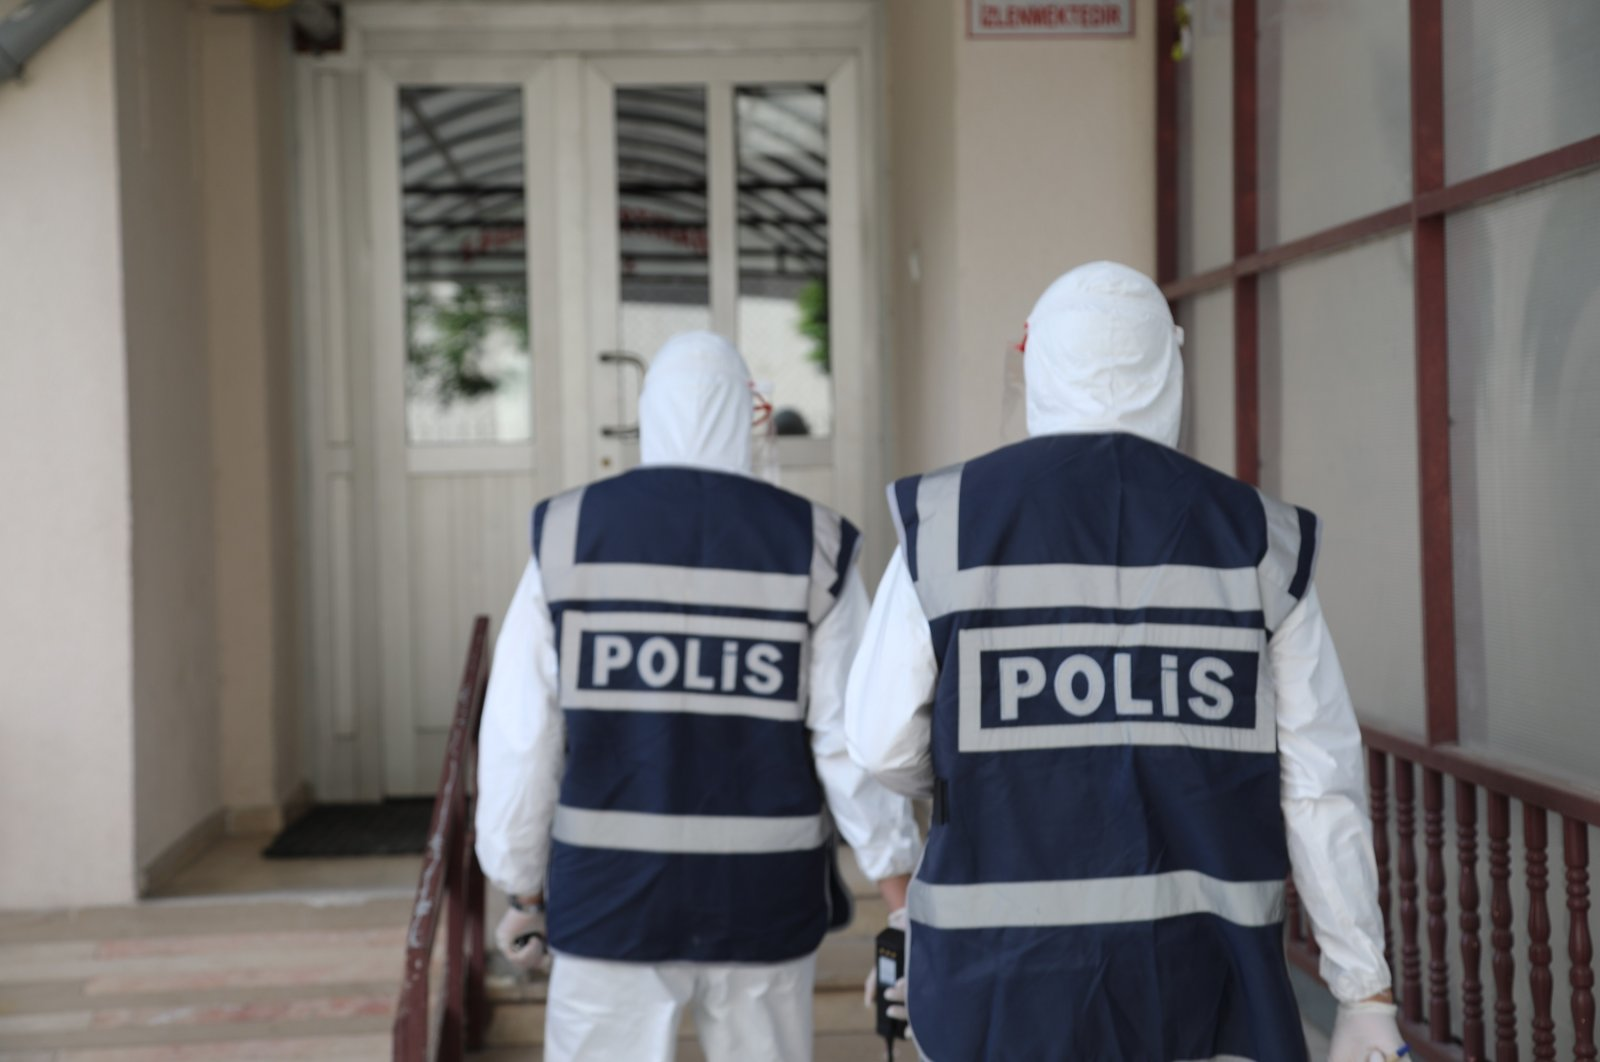 Police officers visiting the home of a COVID-19 patient who was found to be breaking self-isolation orders, Sivas, Turkey, Aug. 14, 2020. (DHA Photo)